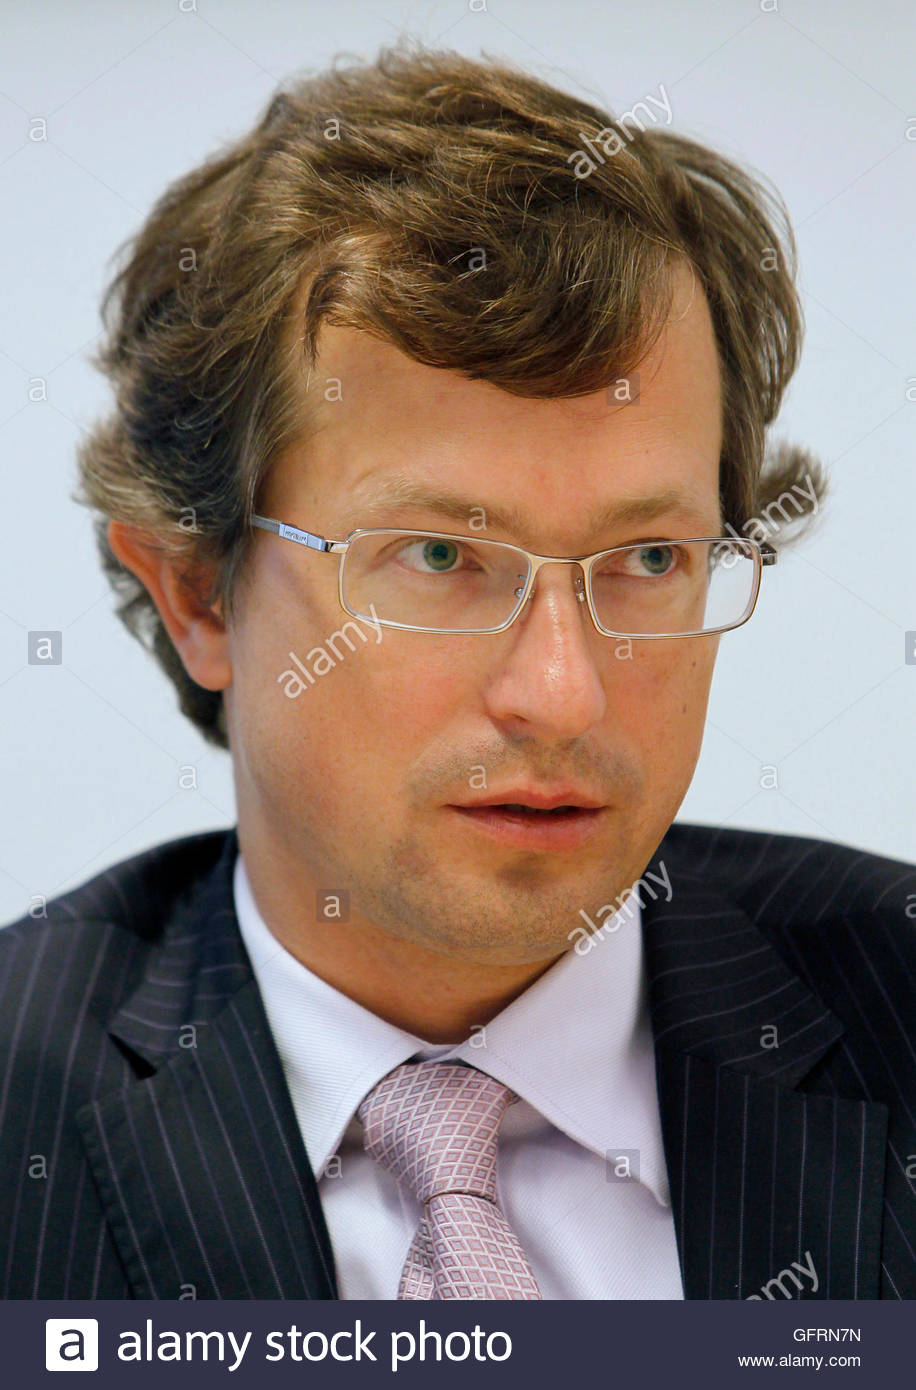 alexei savatyugin russia s deputy finance minister answers a alexei savatyugin russia s deputy finance minister answers a journalist s questions during the reuters russia investment summit in moscow 14